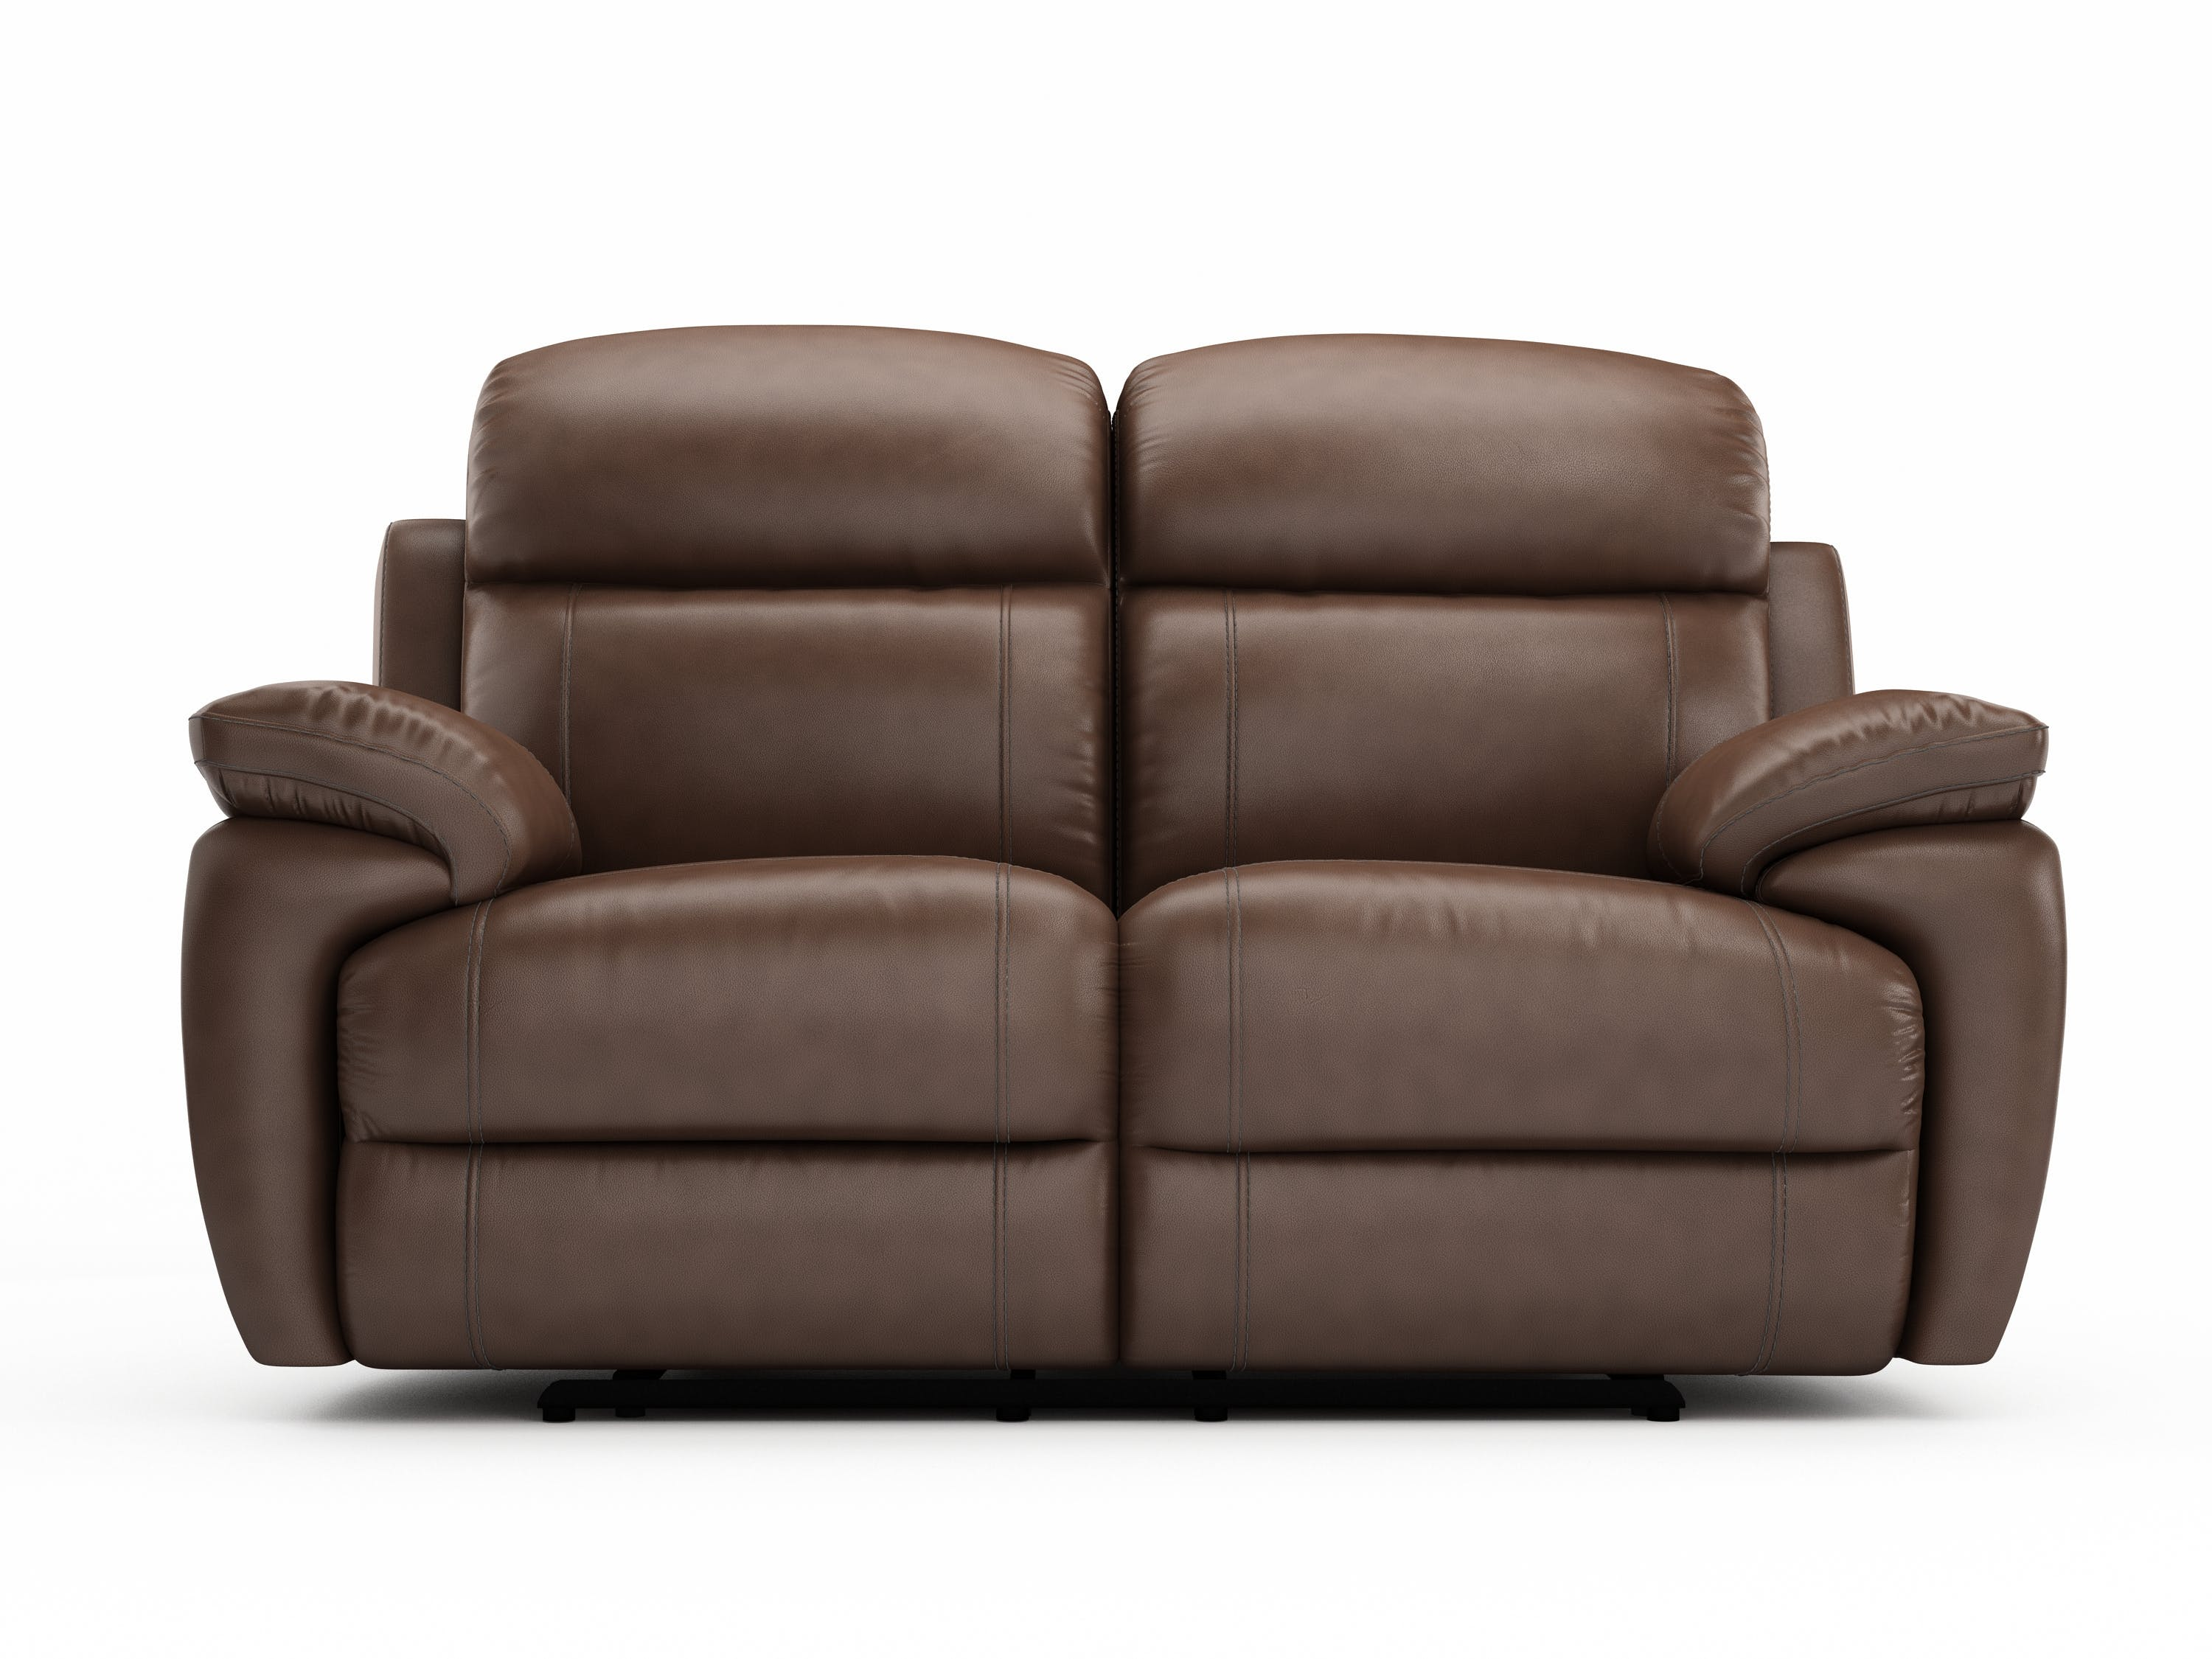 Astonishing Recliner Sofas Harvey Norman Ireland Machost Co Dining Chair Design Ideas Machostcouk